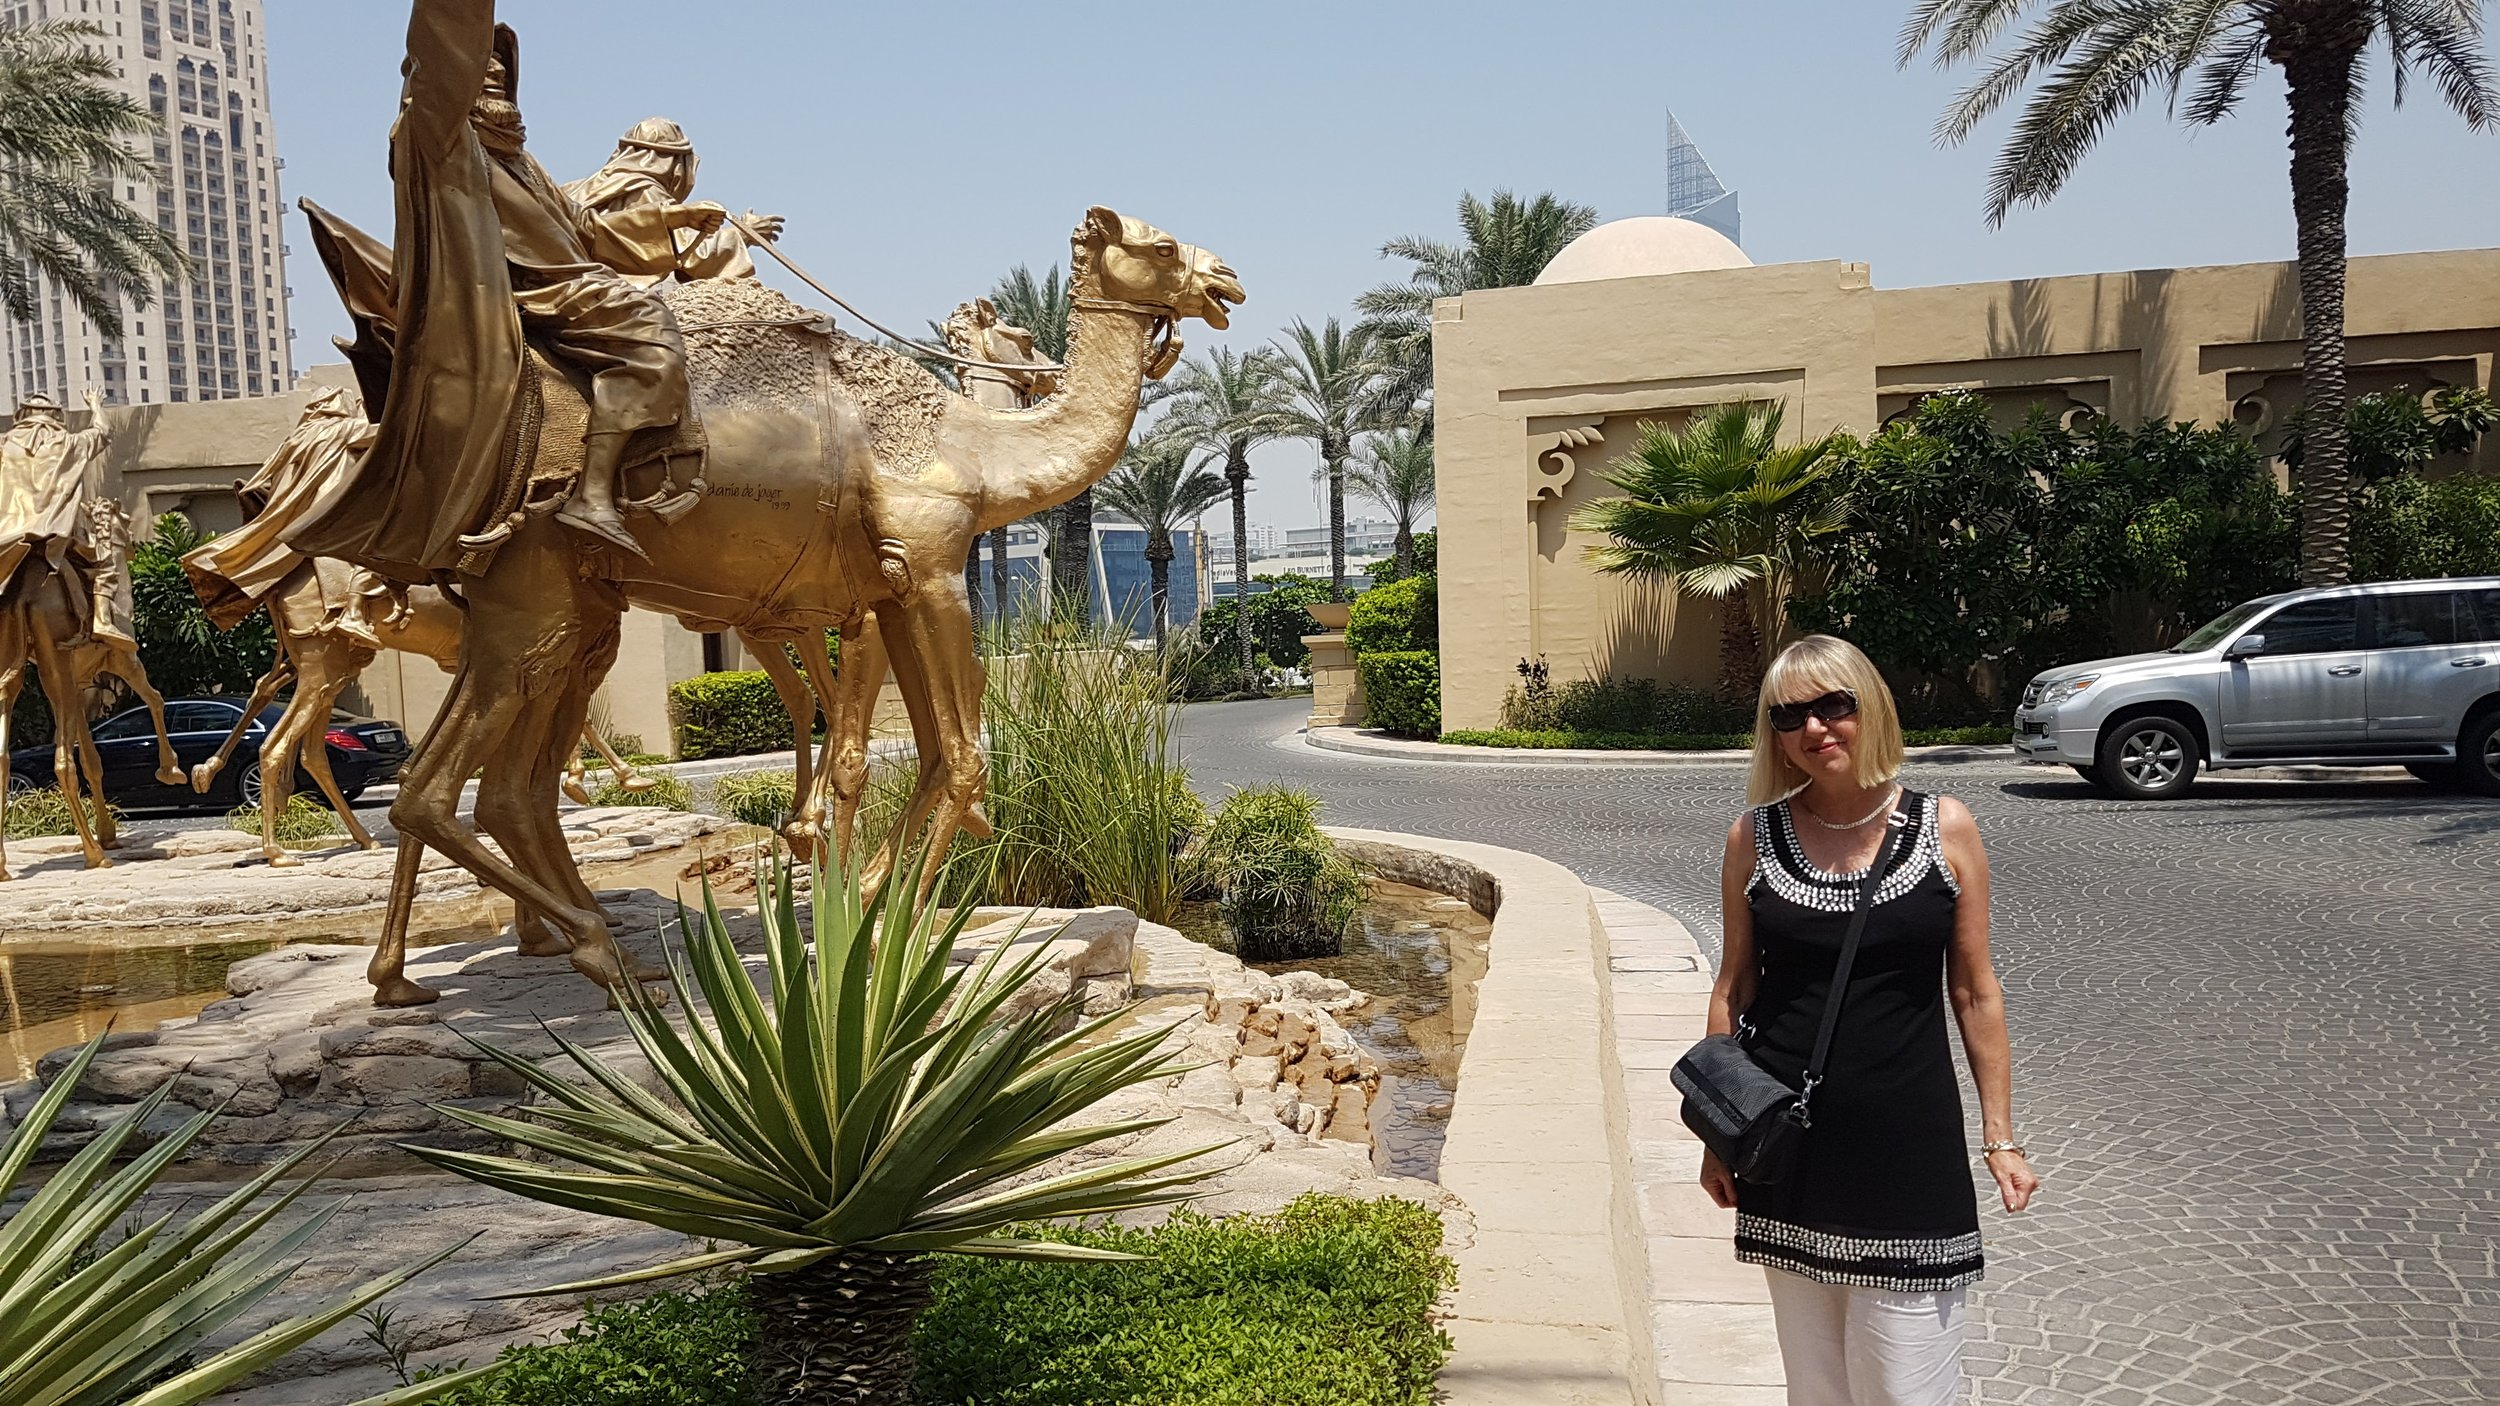 Elene Marsden Dubai at One&Only Royal Mirage Hotel